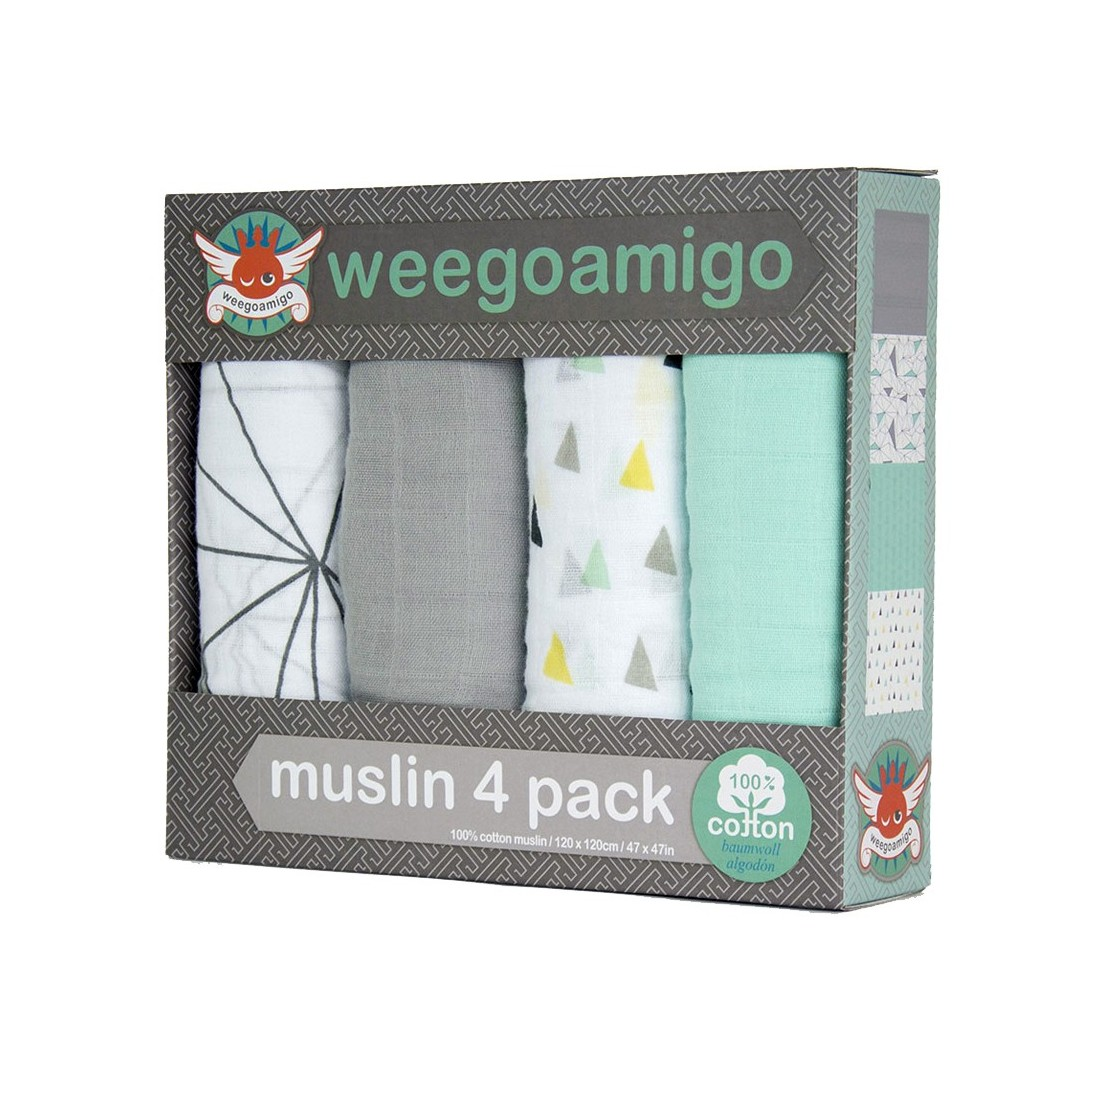 Maxi langes pour bébé Weegoamigo - Pack 4 - SIX DEGREES